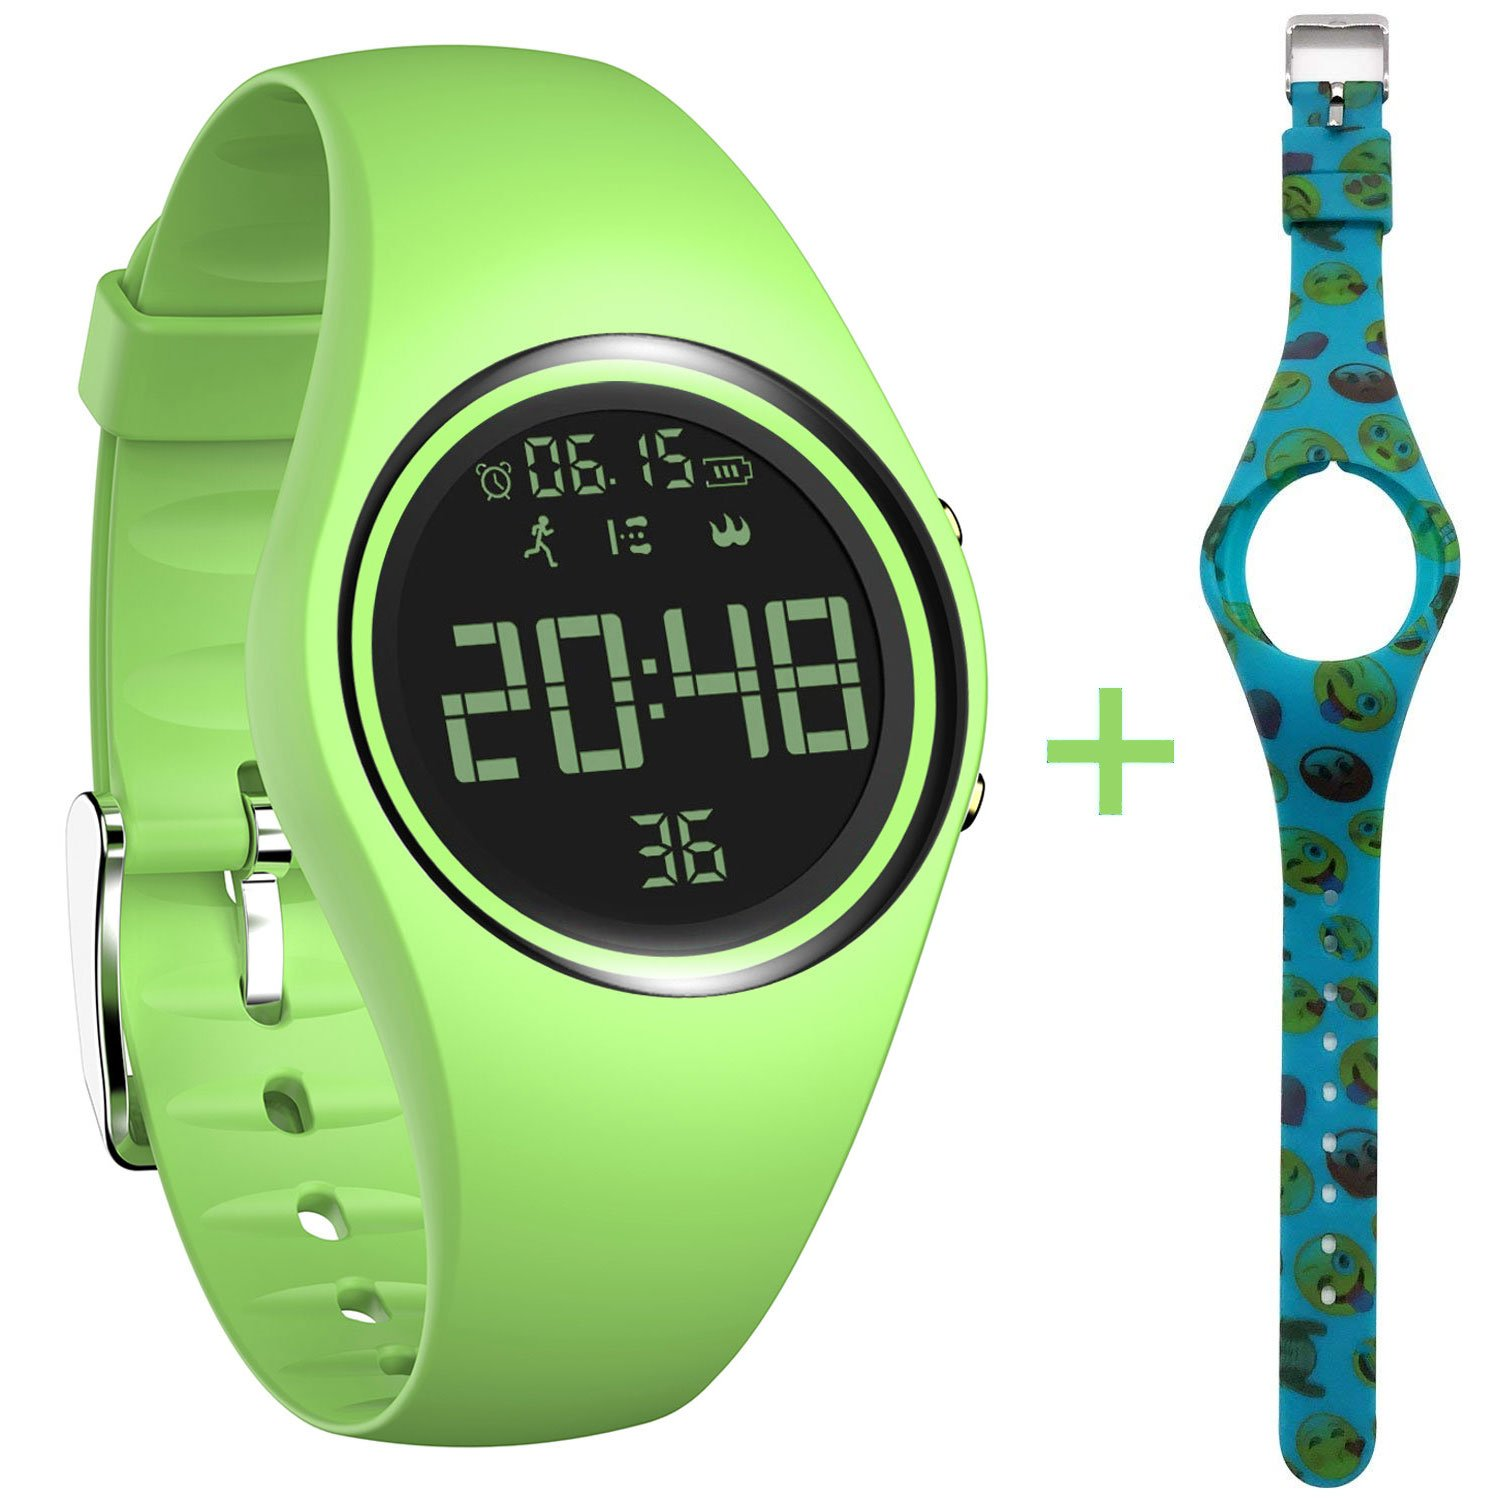 feifuns Fitness Tracker Smart Watch Non-Bluetooth Pedometer Bracelet Smart Sport Bracelet with Timer Step Calories Counter Distance Time/Date Vibration Alarm for Walking Kids Women Men (Green+Band) by feifuns